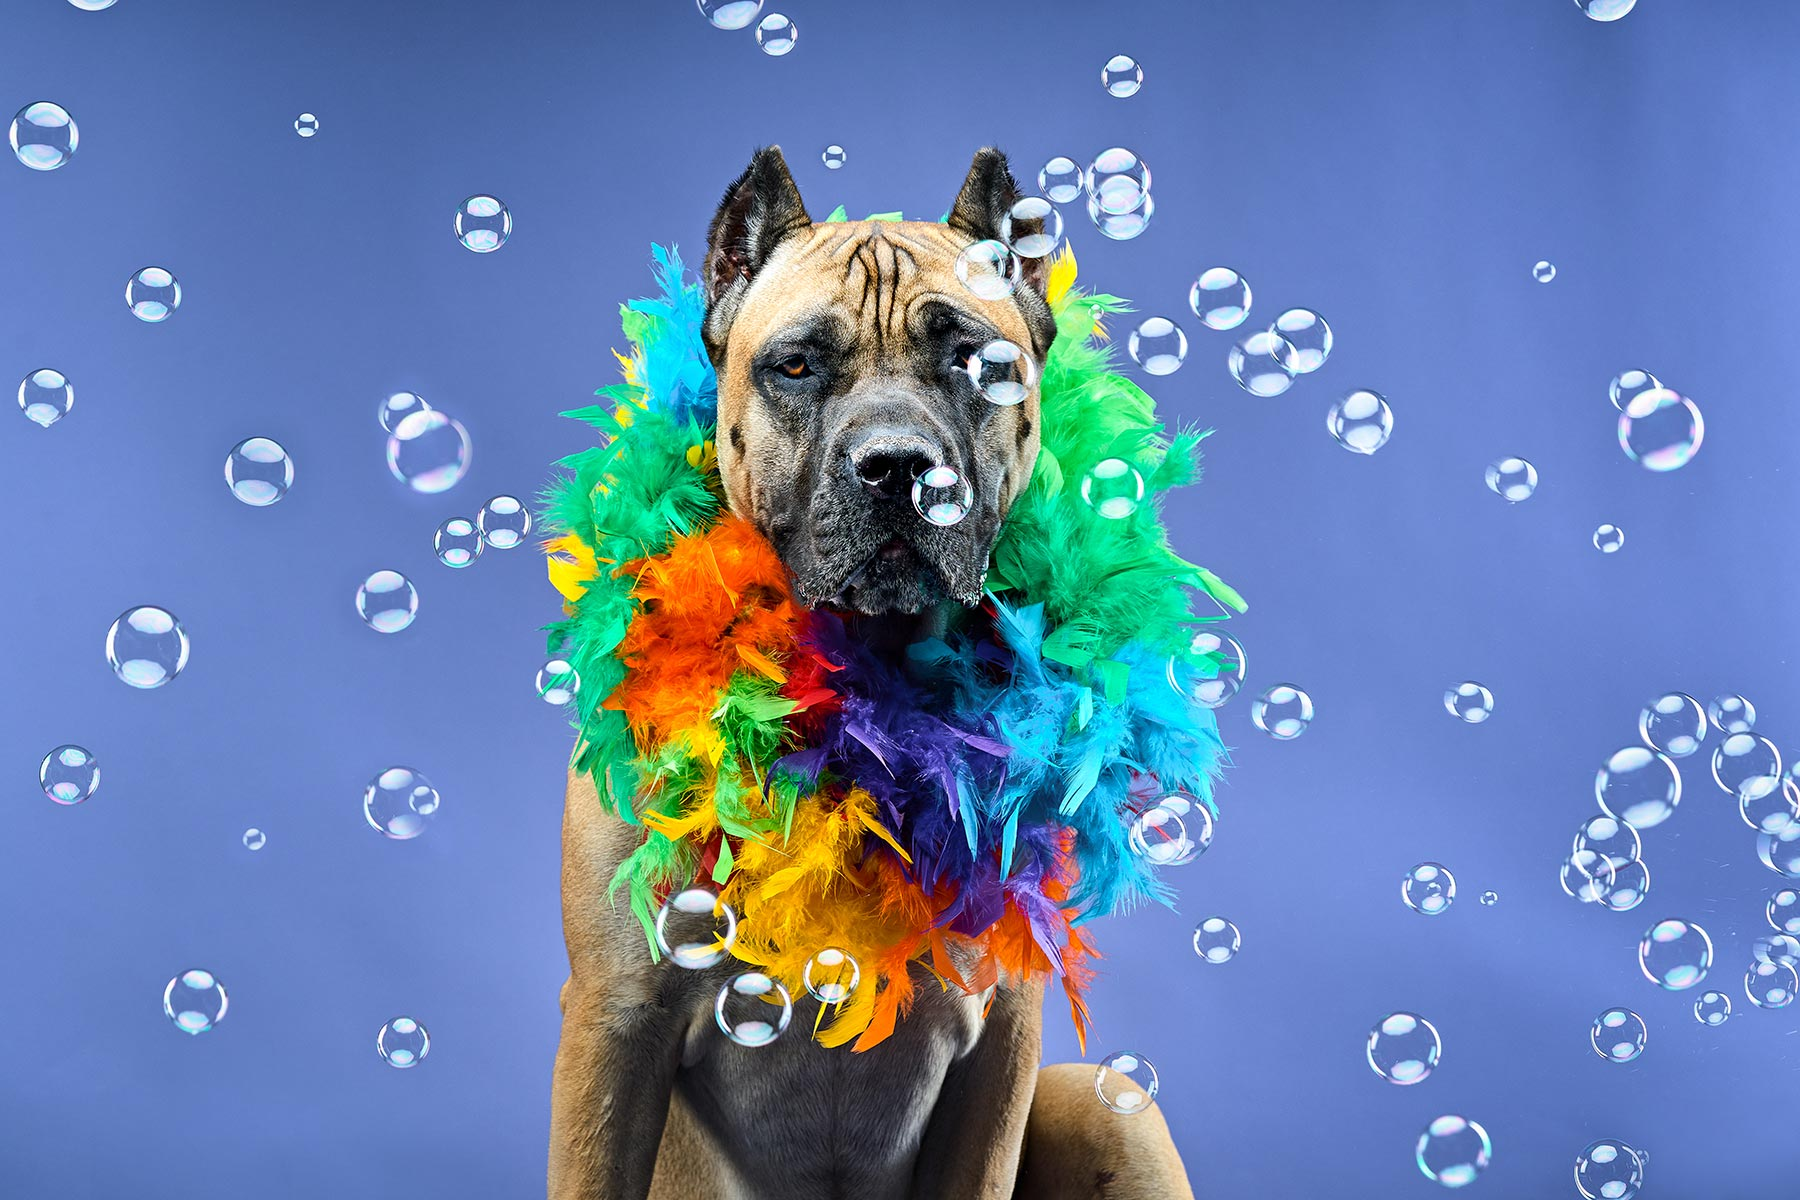 A-studio-portrait-of-a-Cane-Corso-wearing-a-feather-boa-surrounded-by-bubbles